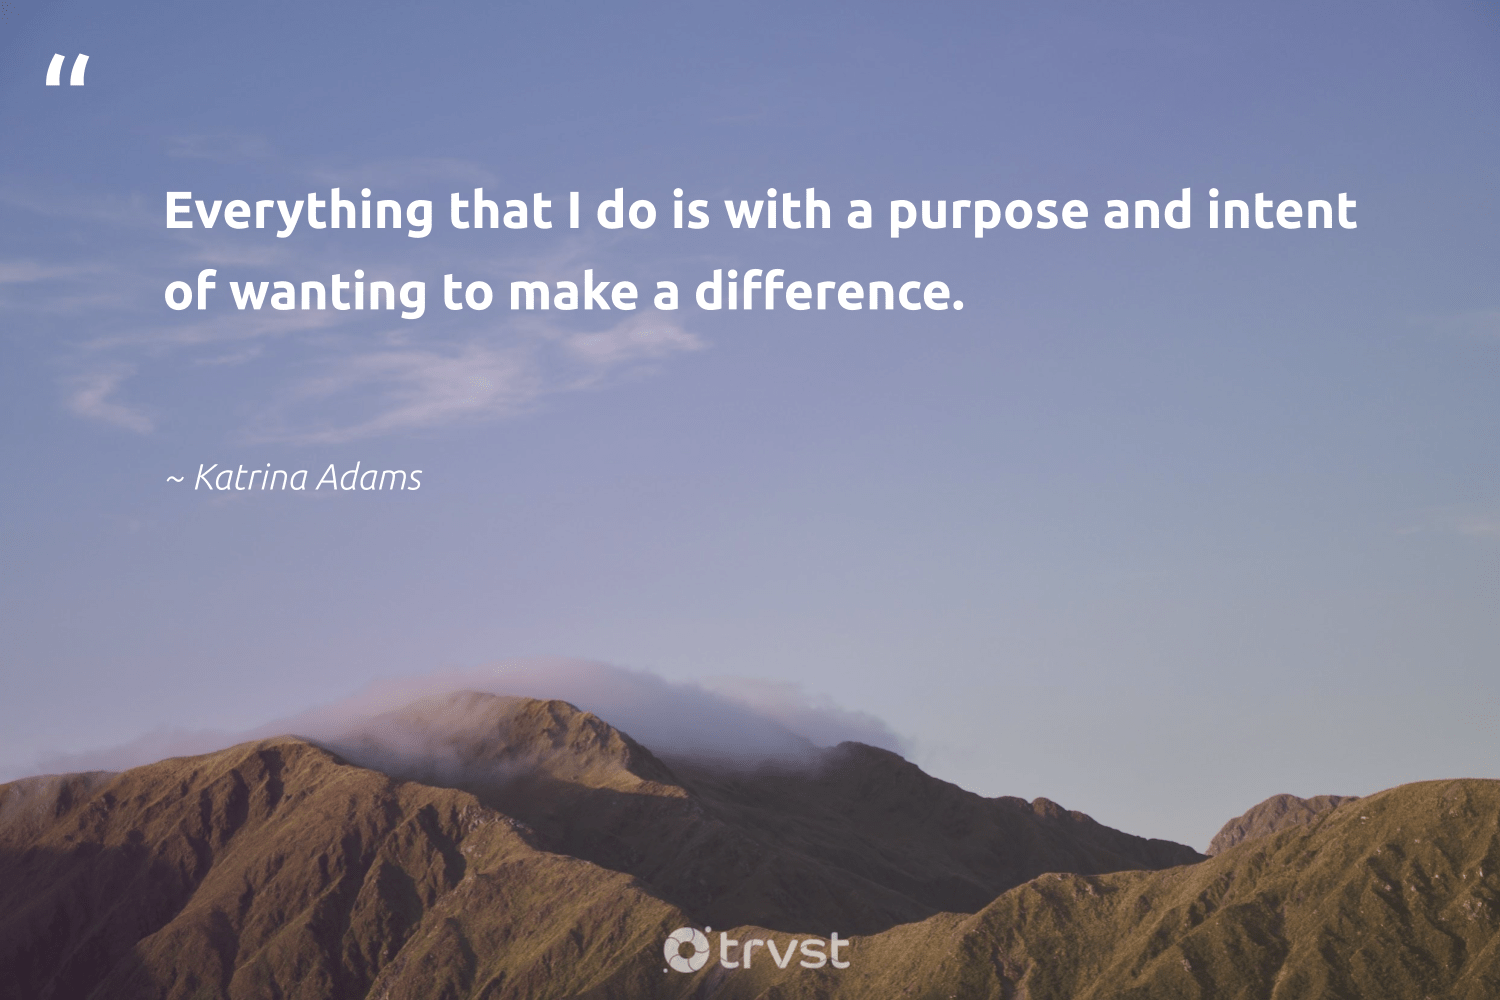 """""""Everything that I do is with a purpose and intent of wanting to make a difference.""""  - Katrina Adams #trvst #quotes #purpose #makeadifference #purposedriven #mindset #health #socialimpact #findingpupose #togetherwecan #begreat #dogood"""